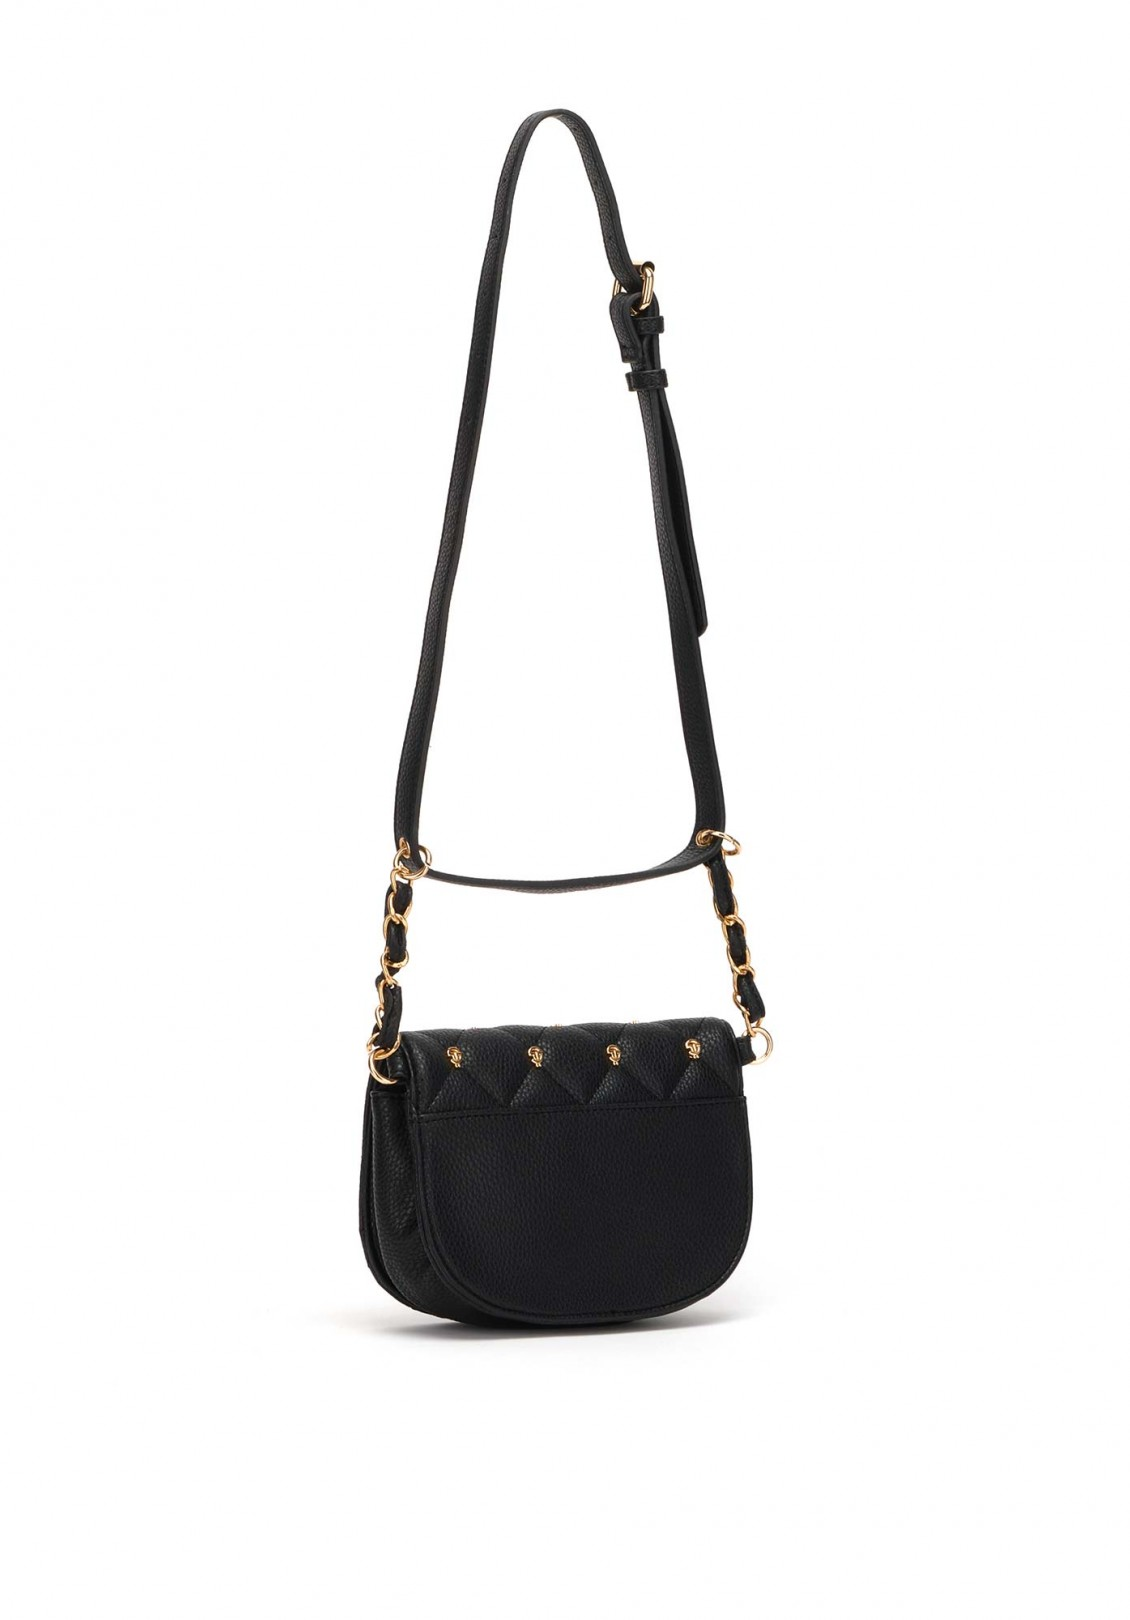 BAG - GBDA2085 - GAELLE PARIS